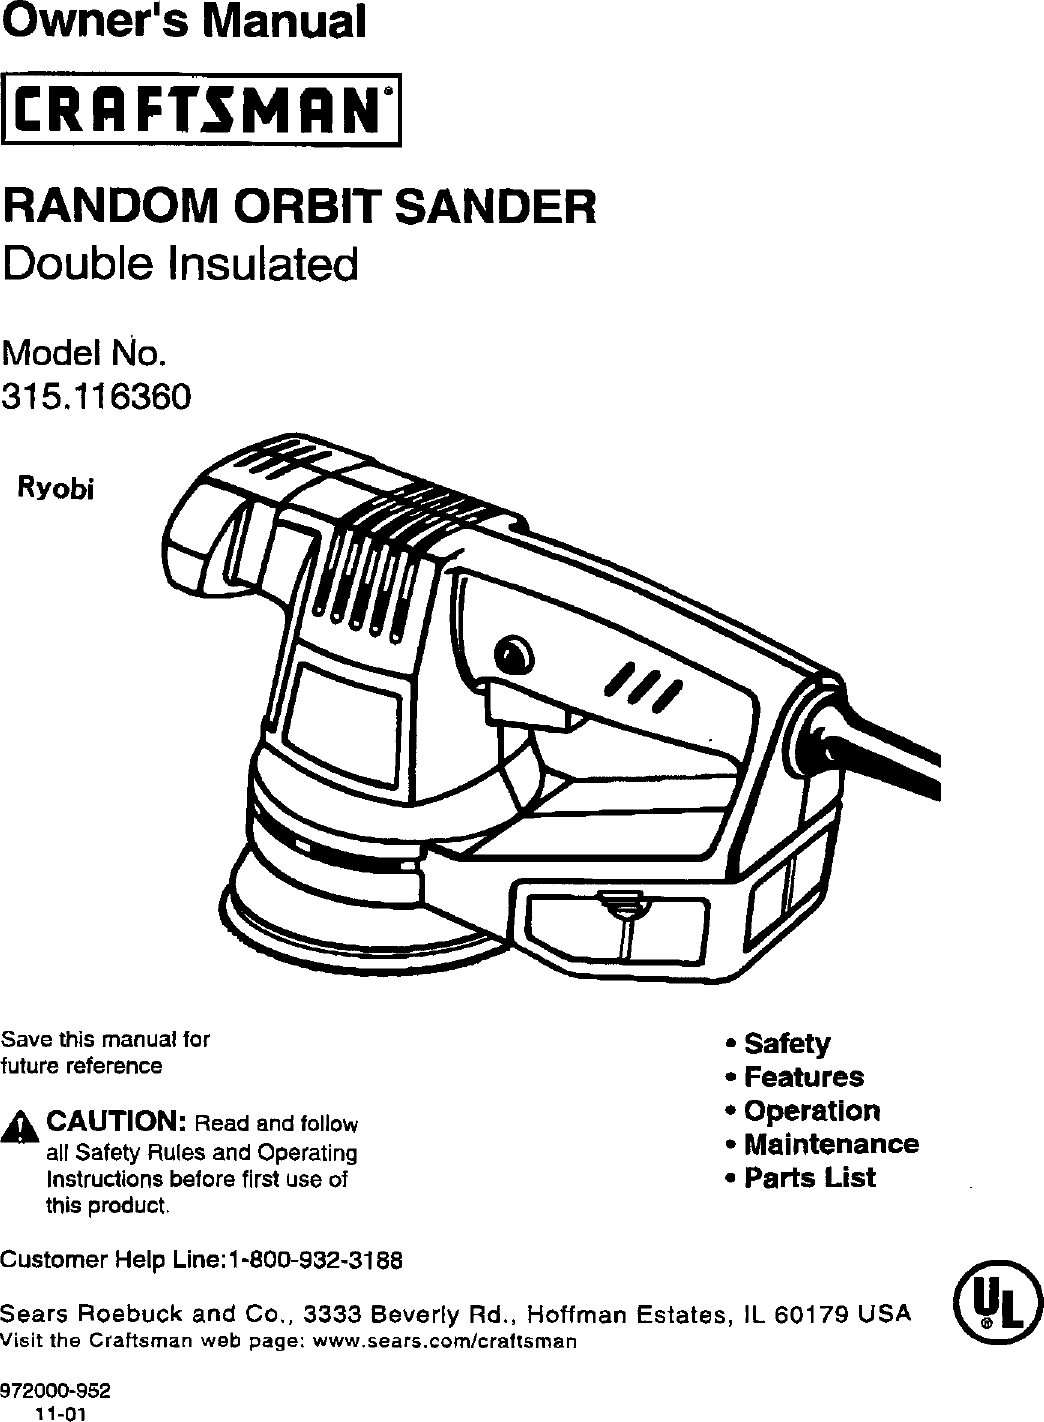 Craftsman 315116360 User Manual RANDOM ORBIT SANDER